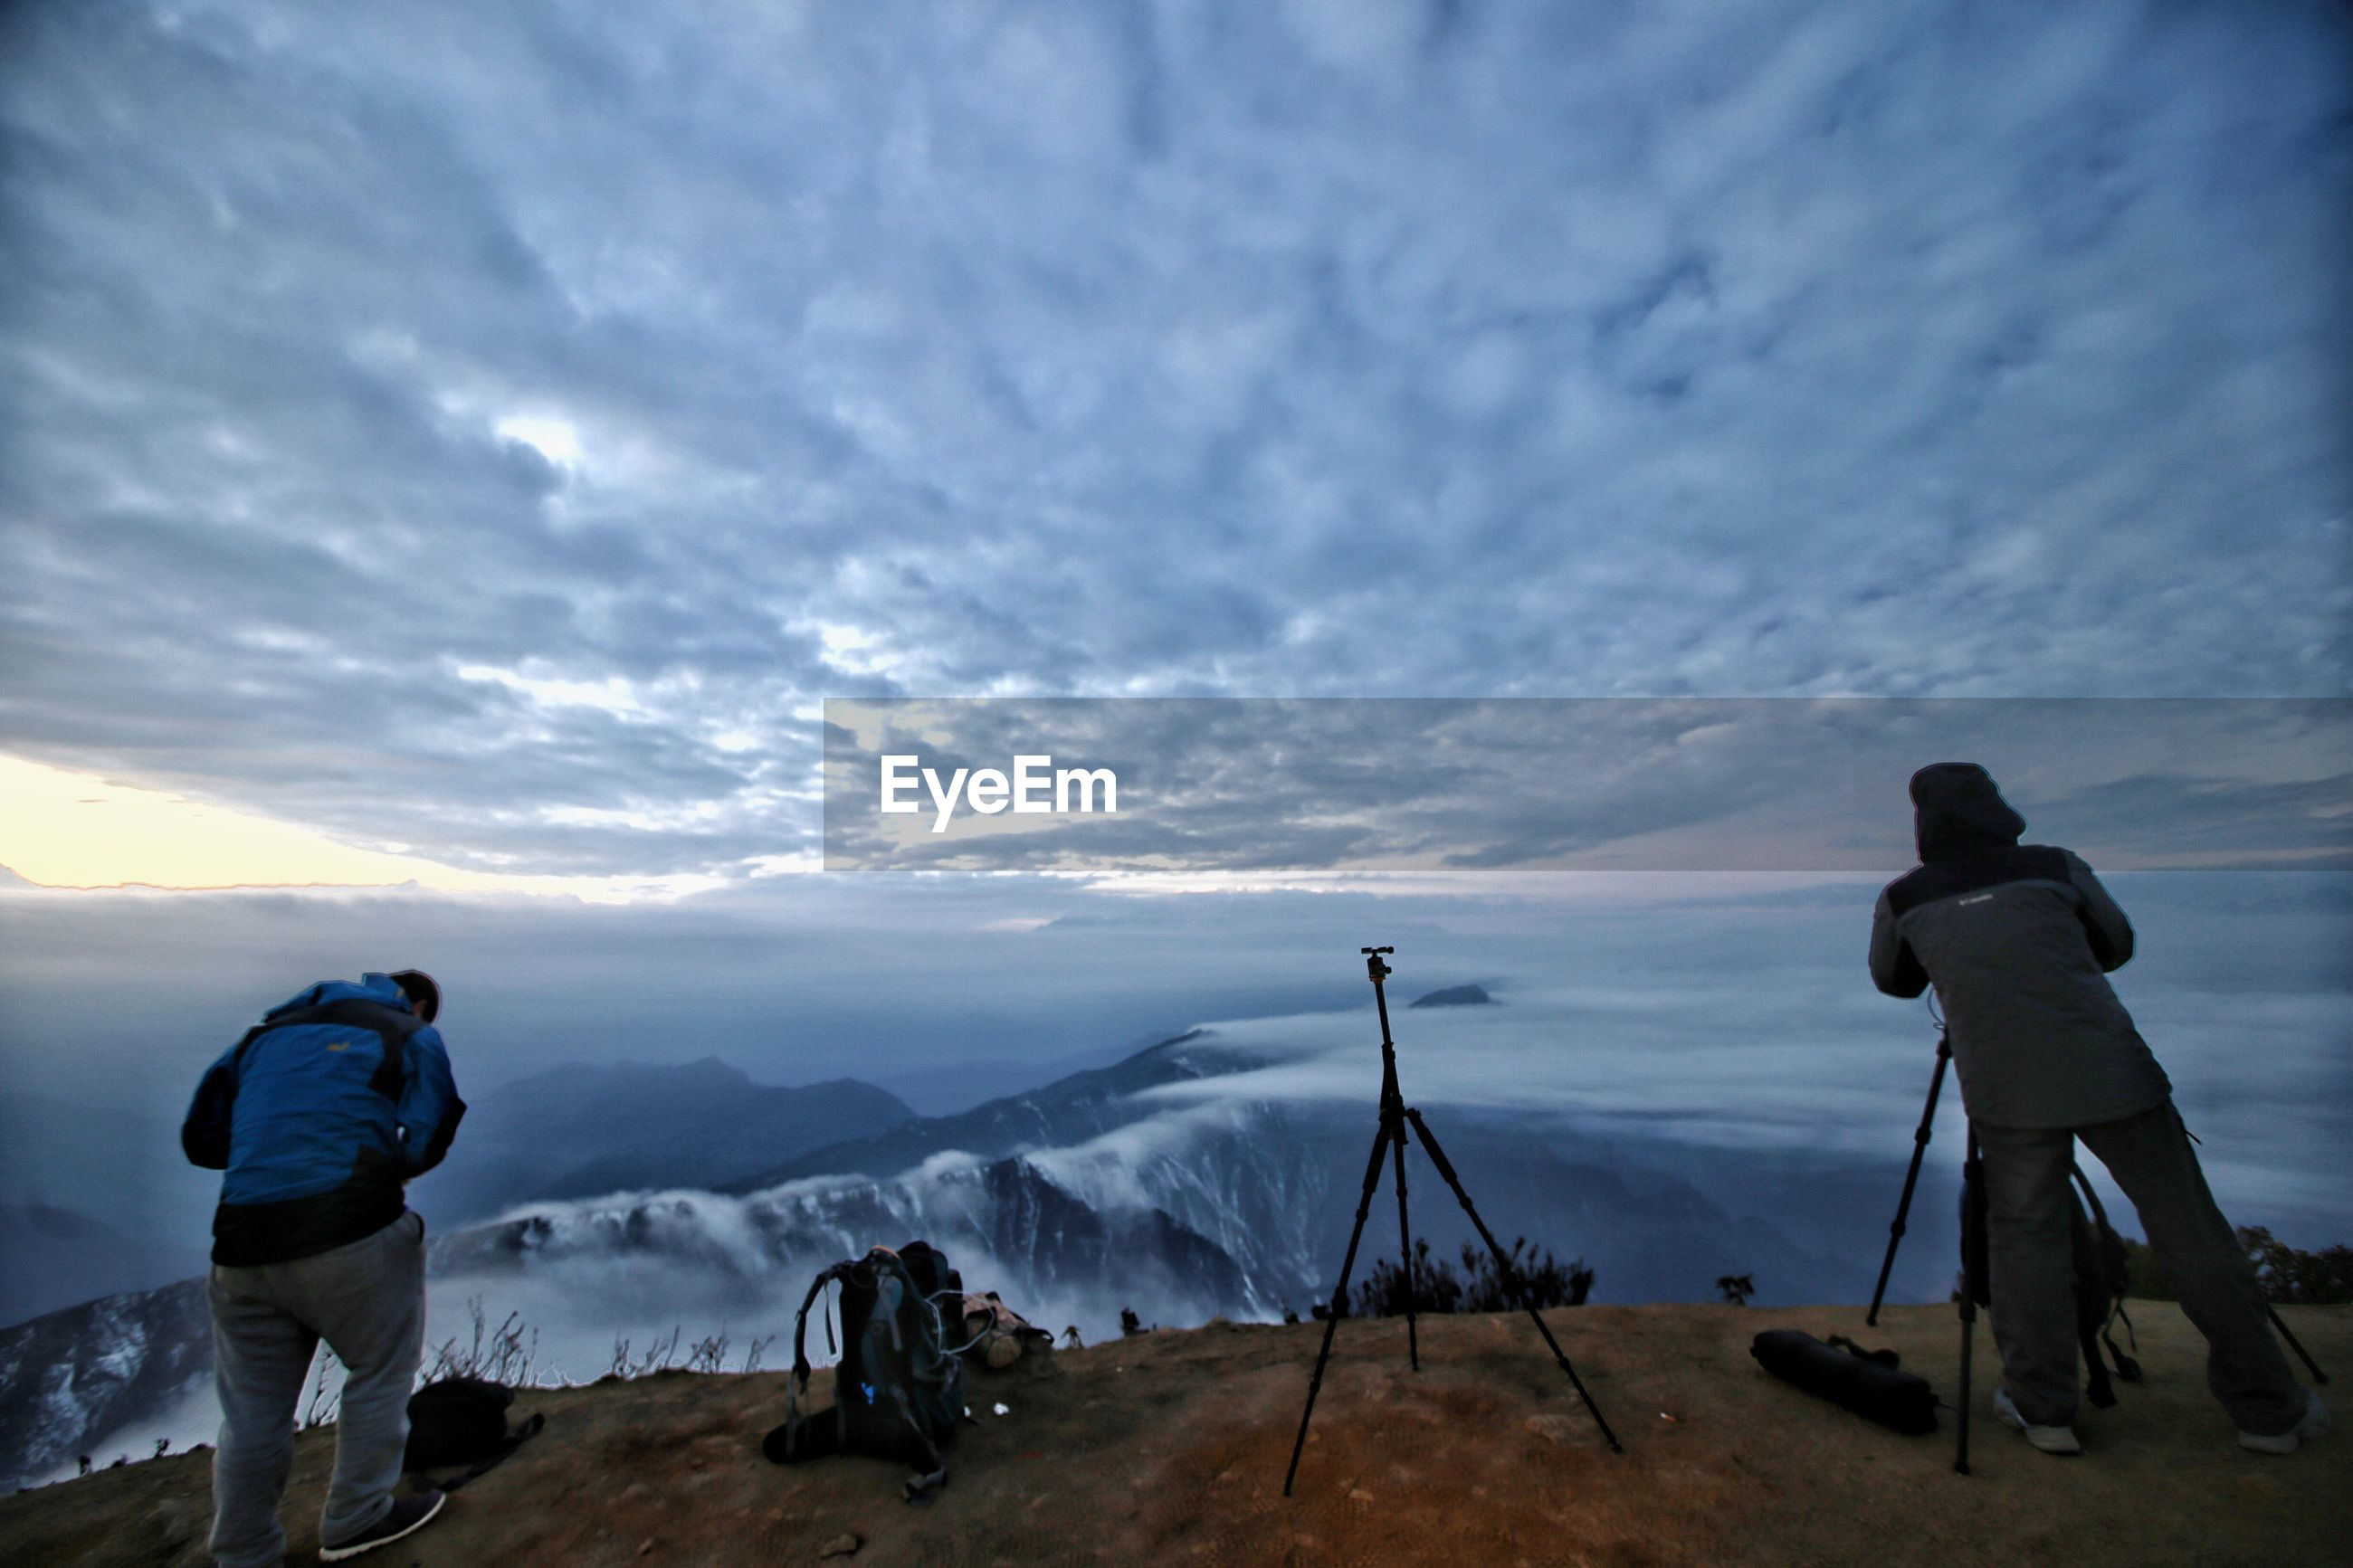 sky, mountain, cloud - sky, men, lifestyles, leisure activity, weather, mountain range, scenics, tranquility, tranquil scene, cloudy, rear view, beauty in nature, landscape, nature, cloud, full length